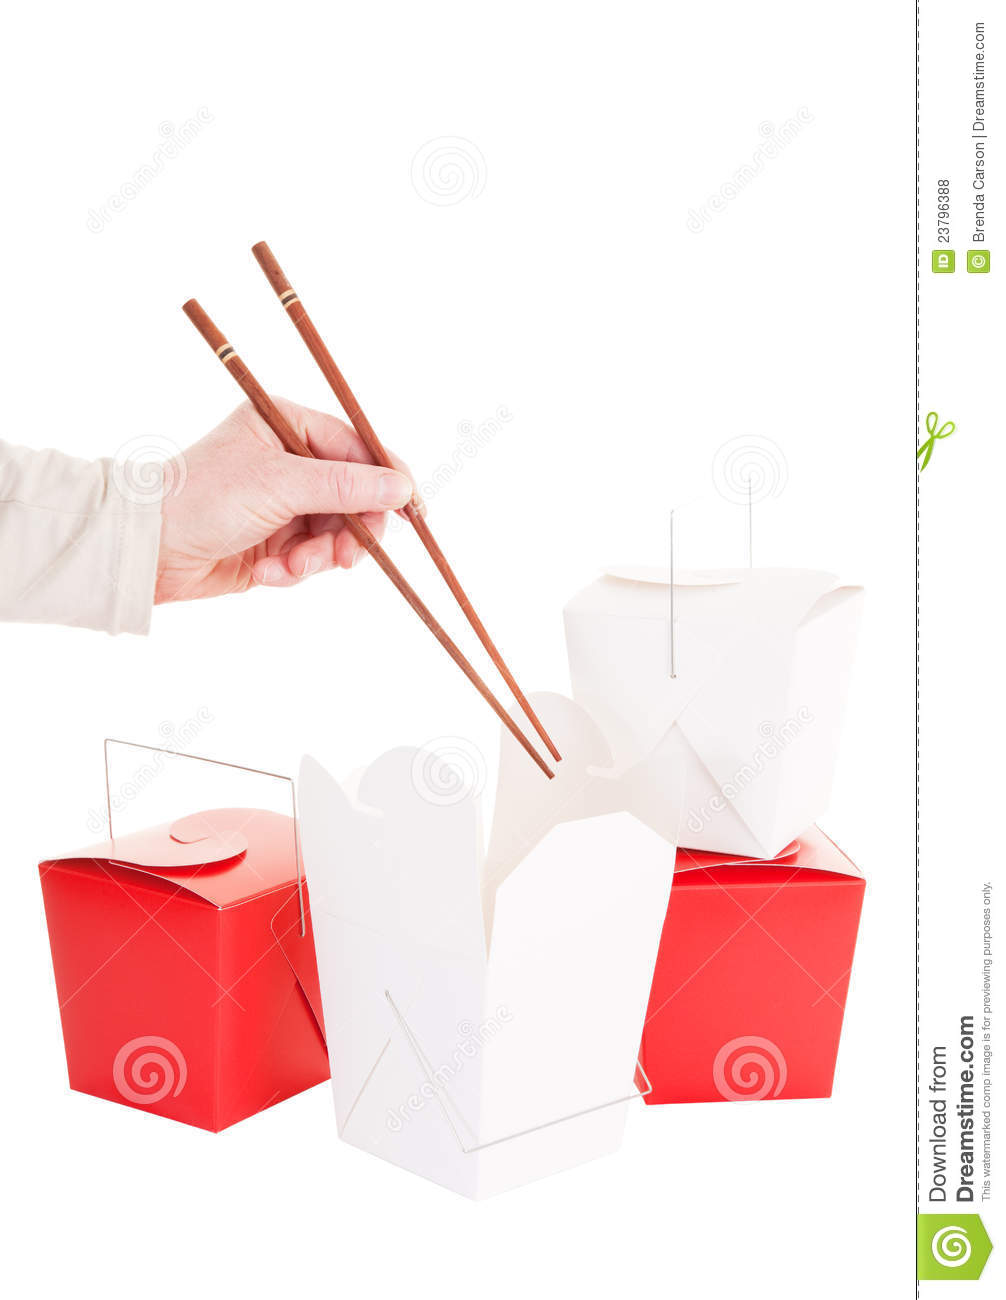 Hand With Chopsticks About To Dig Into Some Chinese Take Out Food